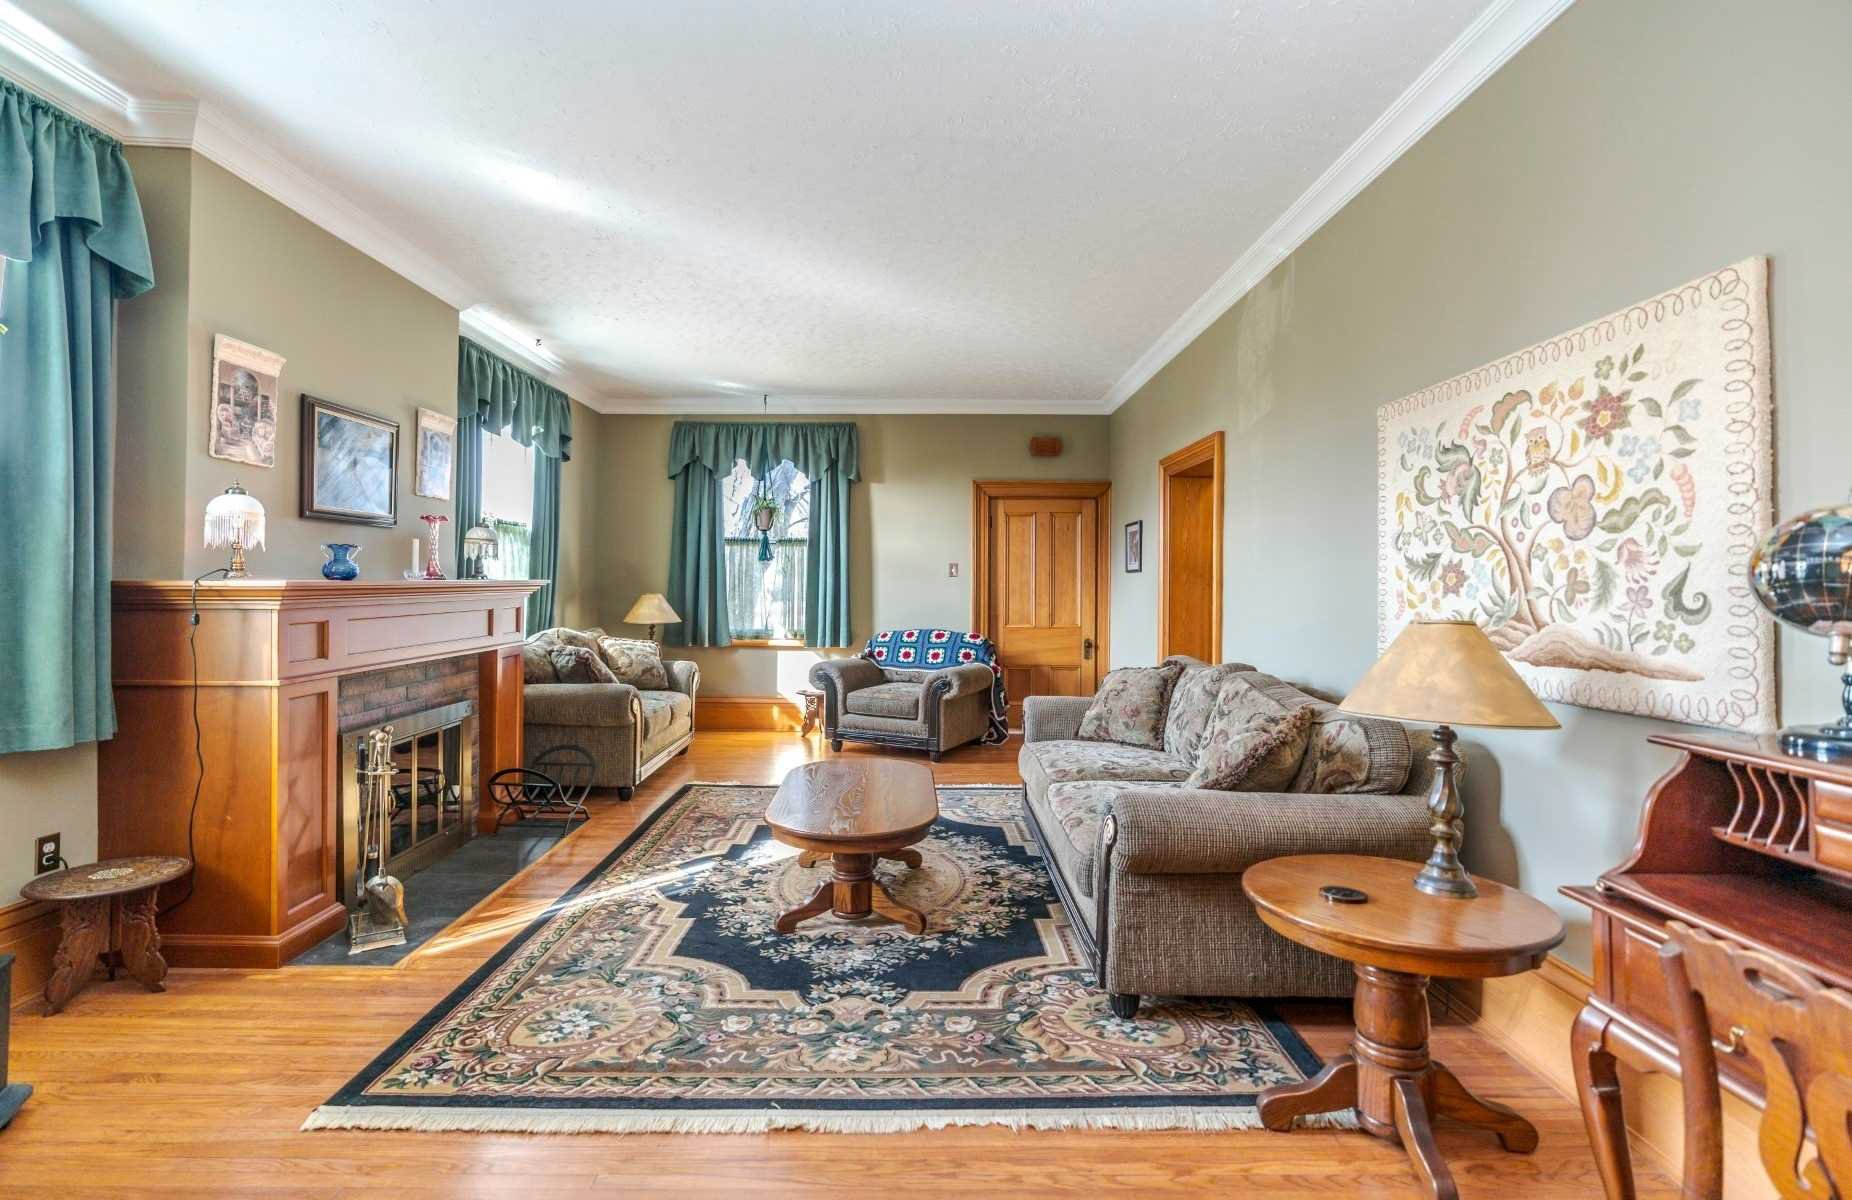 Photo 4: Photos: 1009 S Centre Street in Whitby: Downtown Whitby House (Bungalow) for sale : MLS®# E4714116